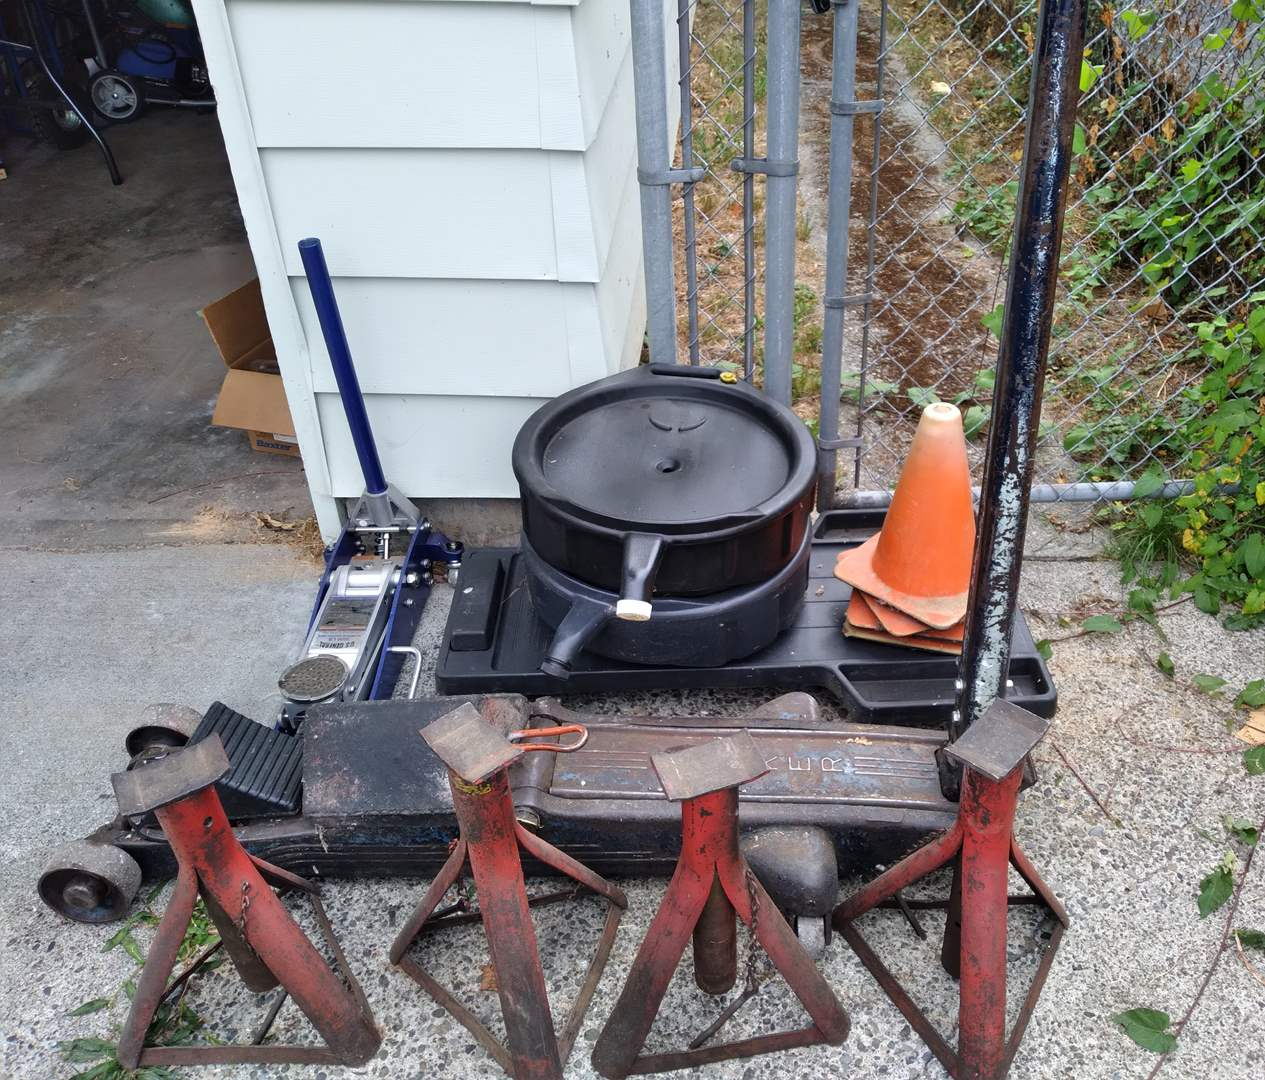 Lot # 76 - Jack Stands, Two Floor Jacks, Roller Board Creeper, Cones, and Drain Pans (main image)